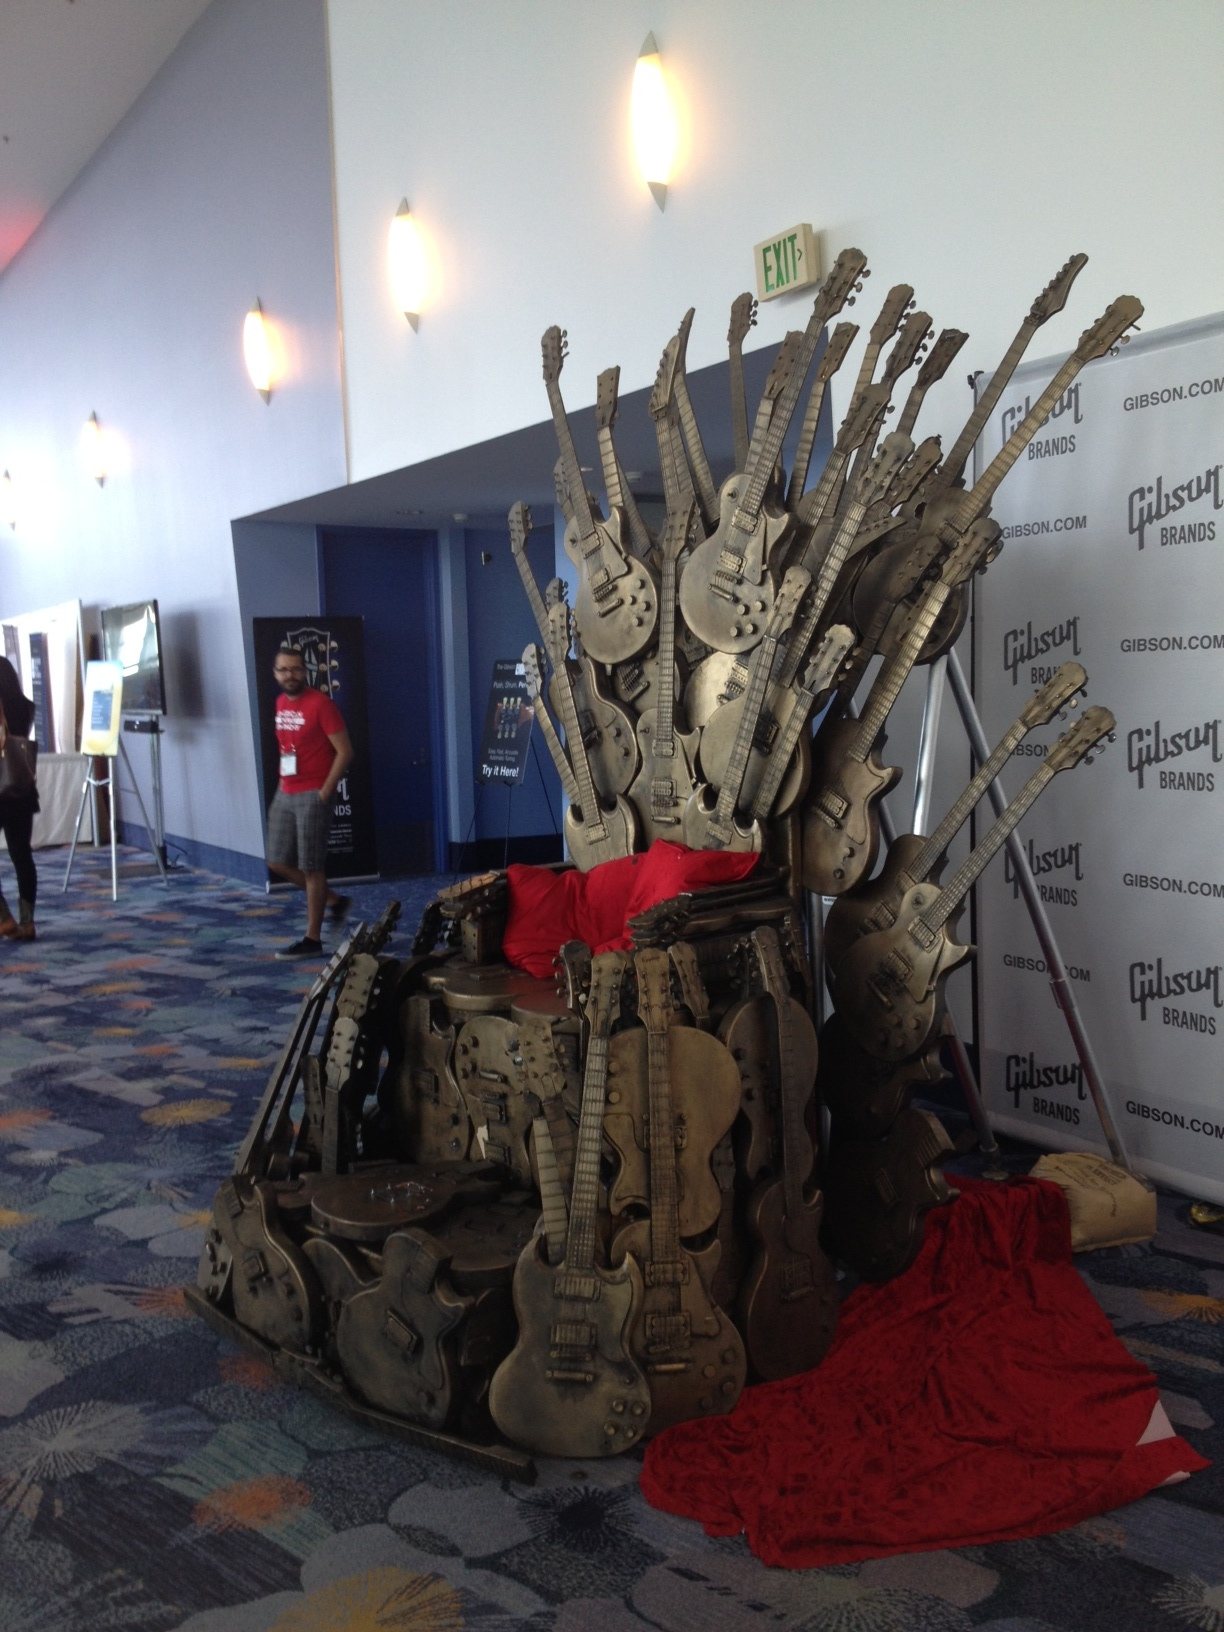 gibson guitars throne of guitars at namm show